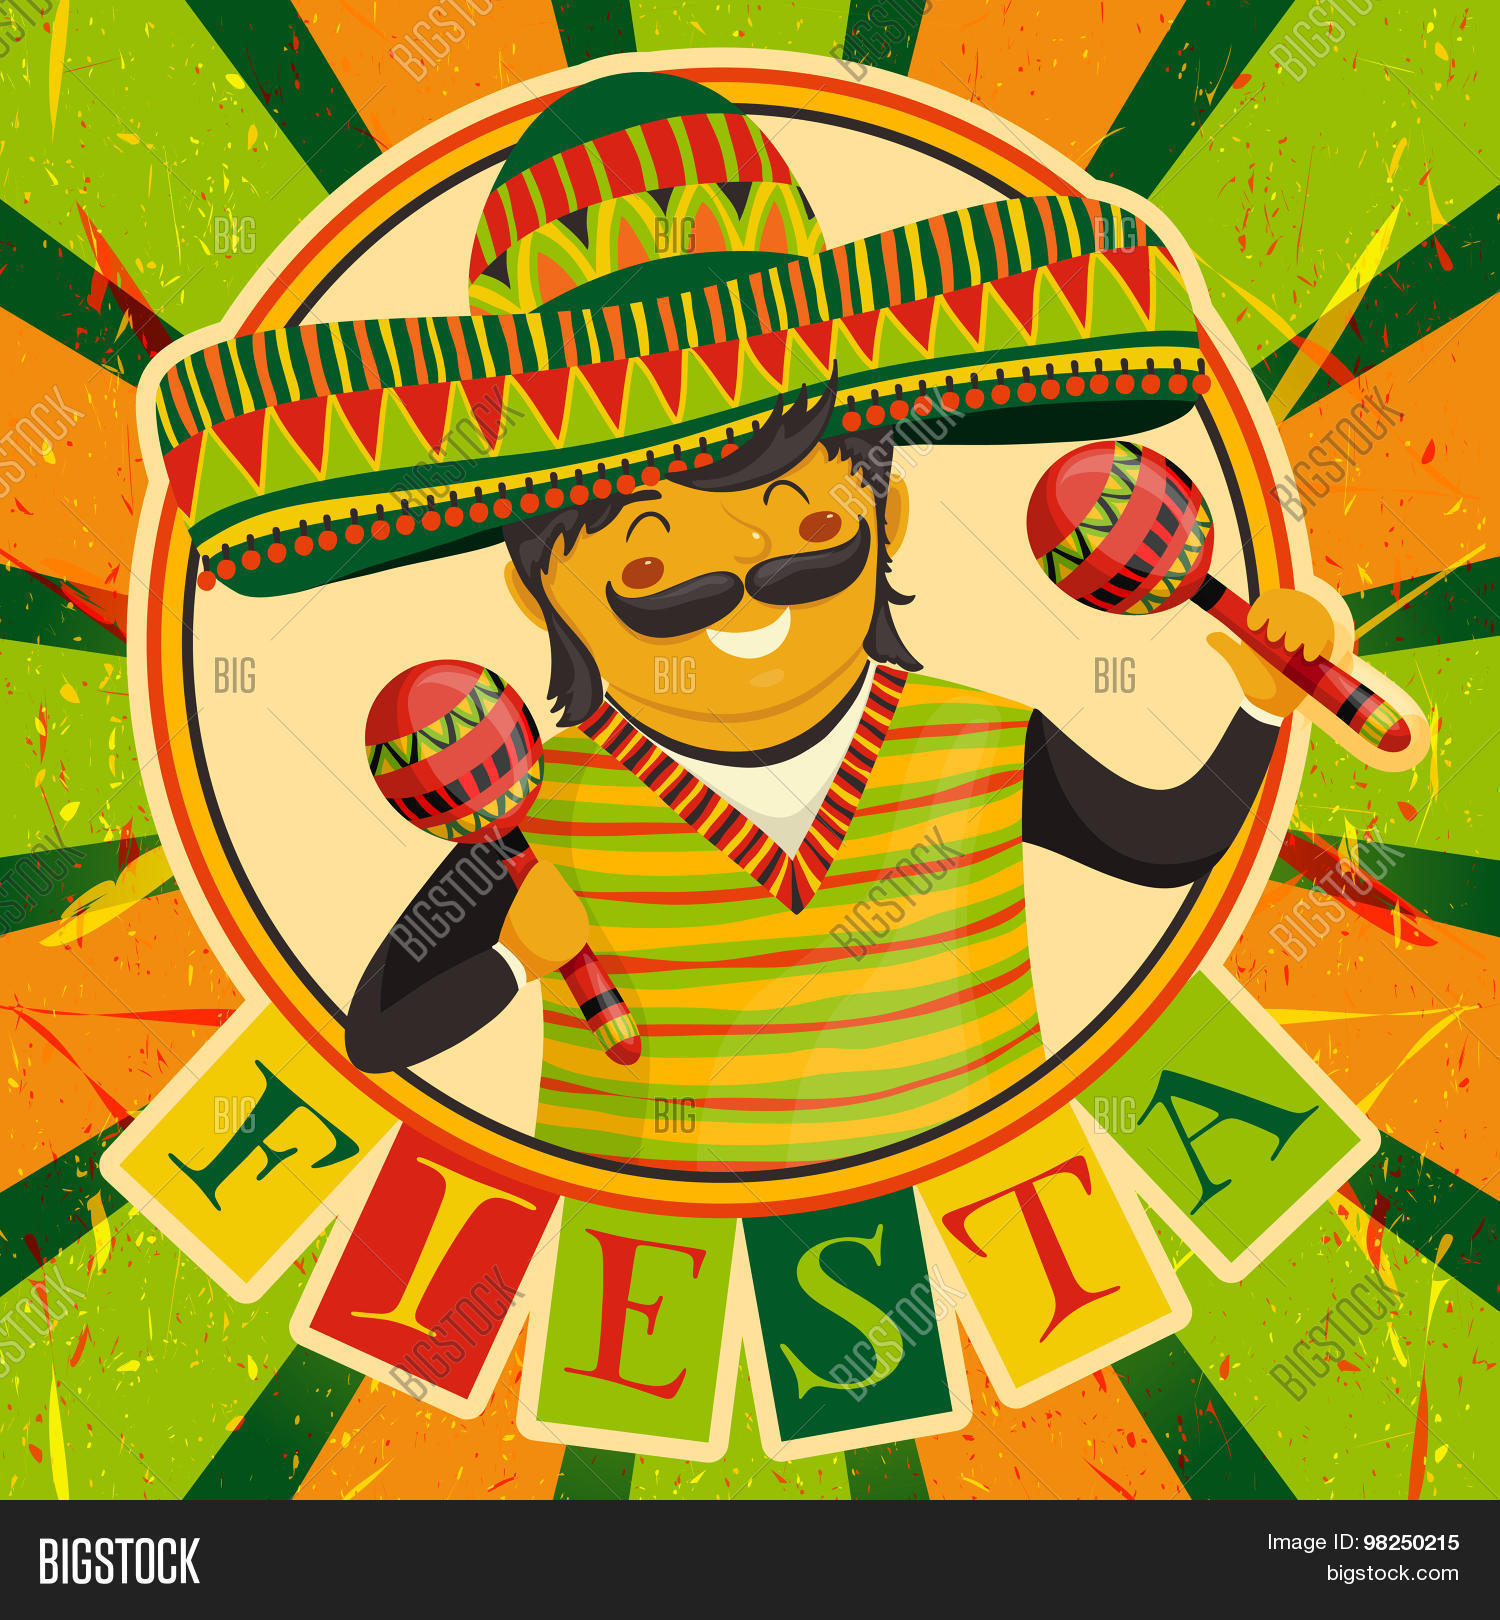 Mexican fiesta party invitation vector photo bigstock mexican fiesta party invitation with mexican man playing the maracas in a sombrero hand drawn stopboris Image collections